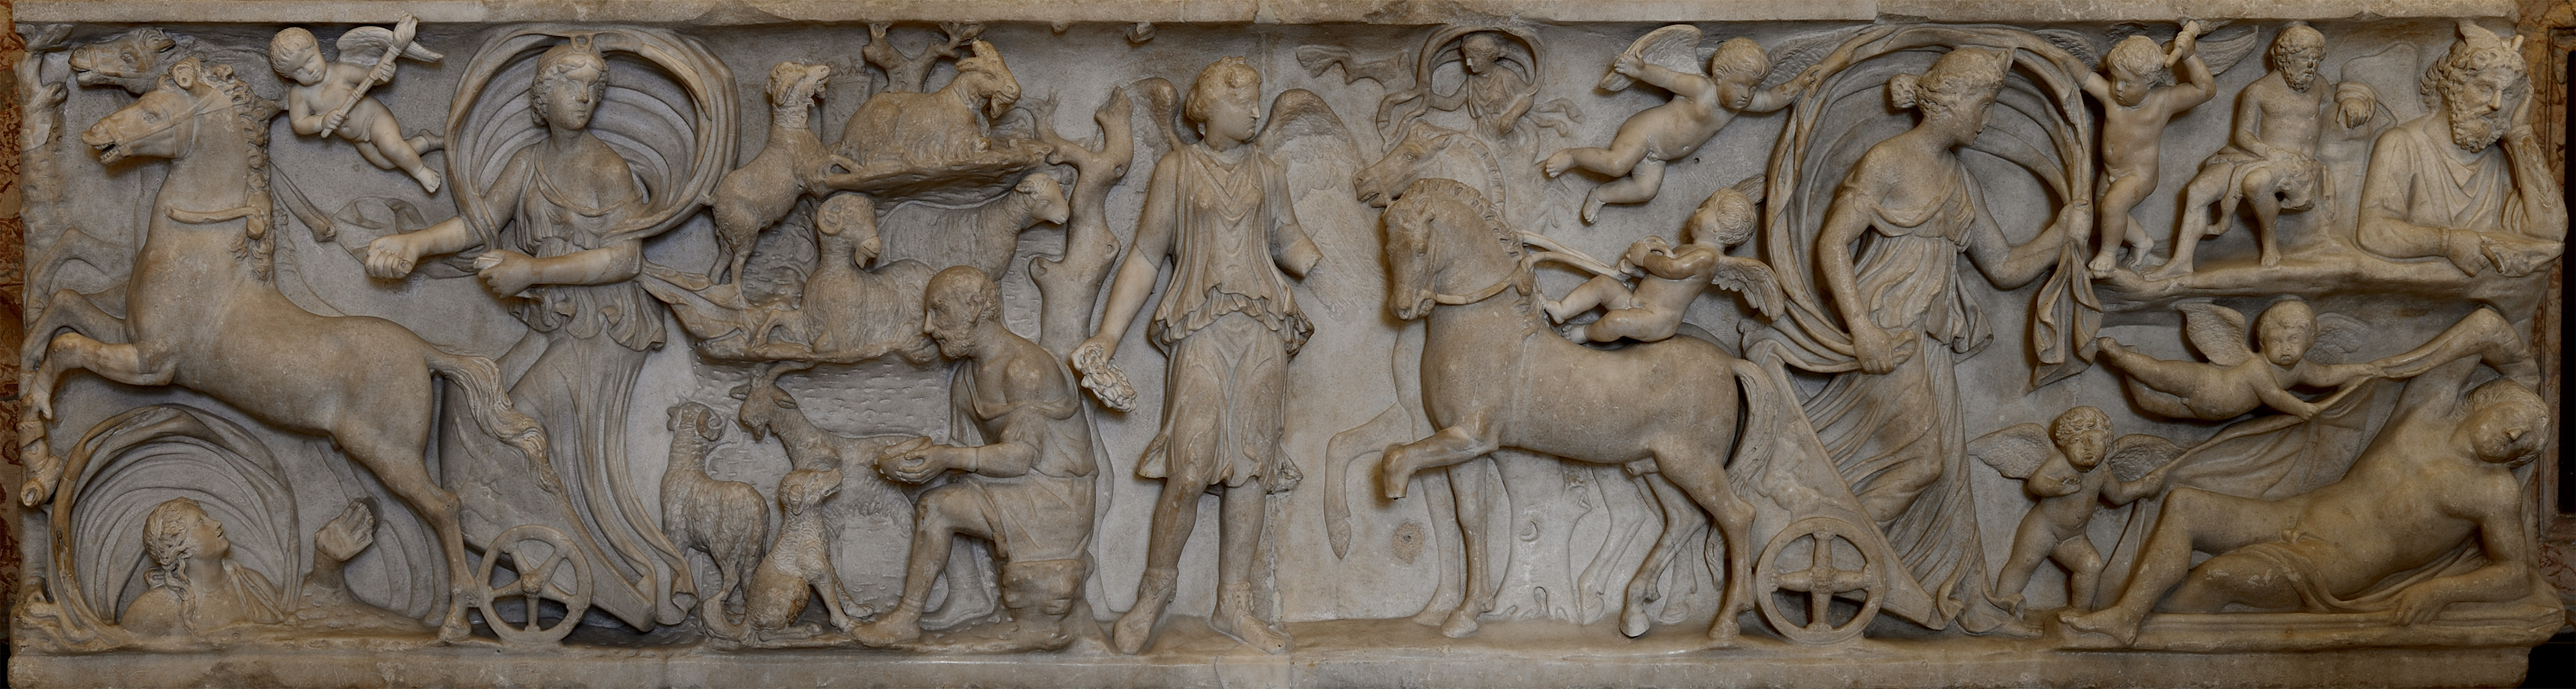 Sarcophagus with a myth of Selene and Endymion. Front panel. Marble. Beginning of the 3rd cent. CE.  Inv. No. MC 725. Rome, Capitoline Museums, Palazzo dei Conservatori